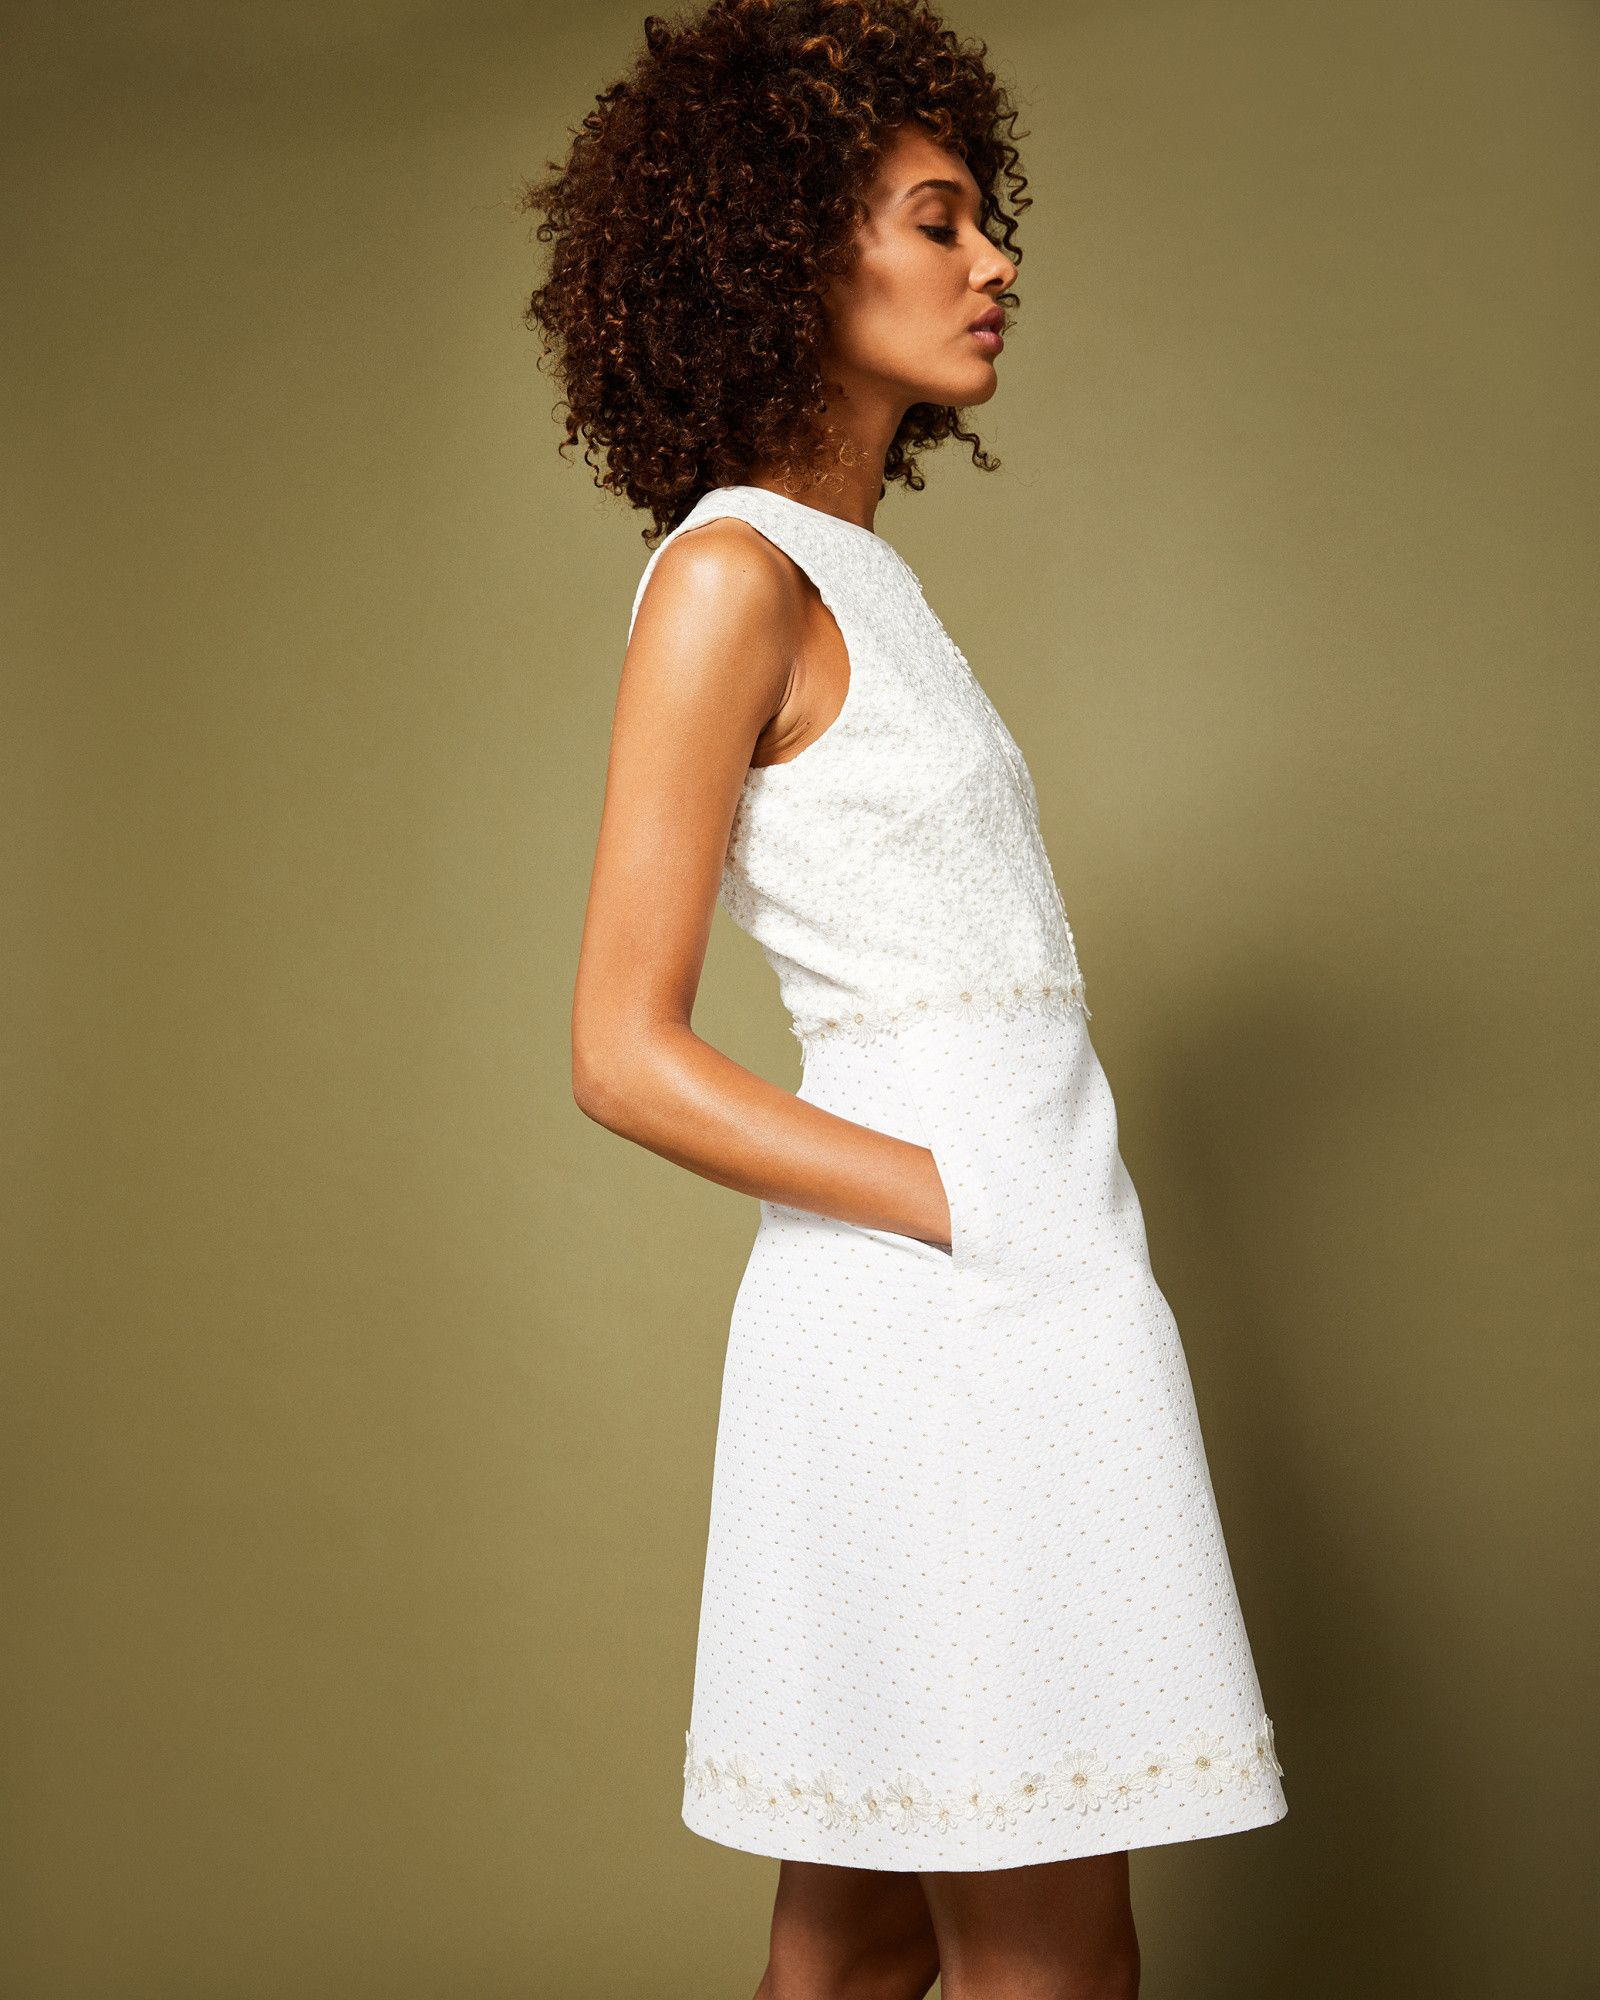 f5a7881279b Ted Baker Daisy Chain lace shift dress White | Wedding | Dresses ...